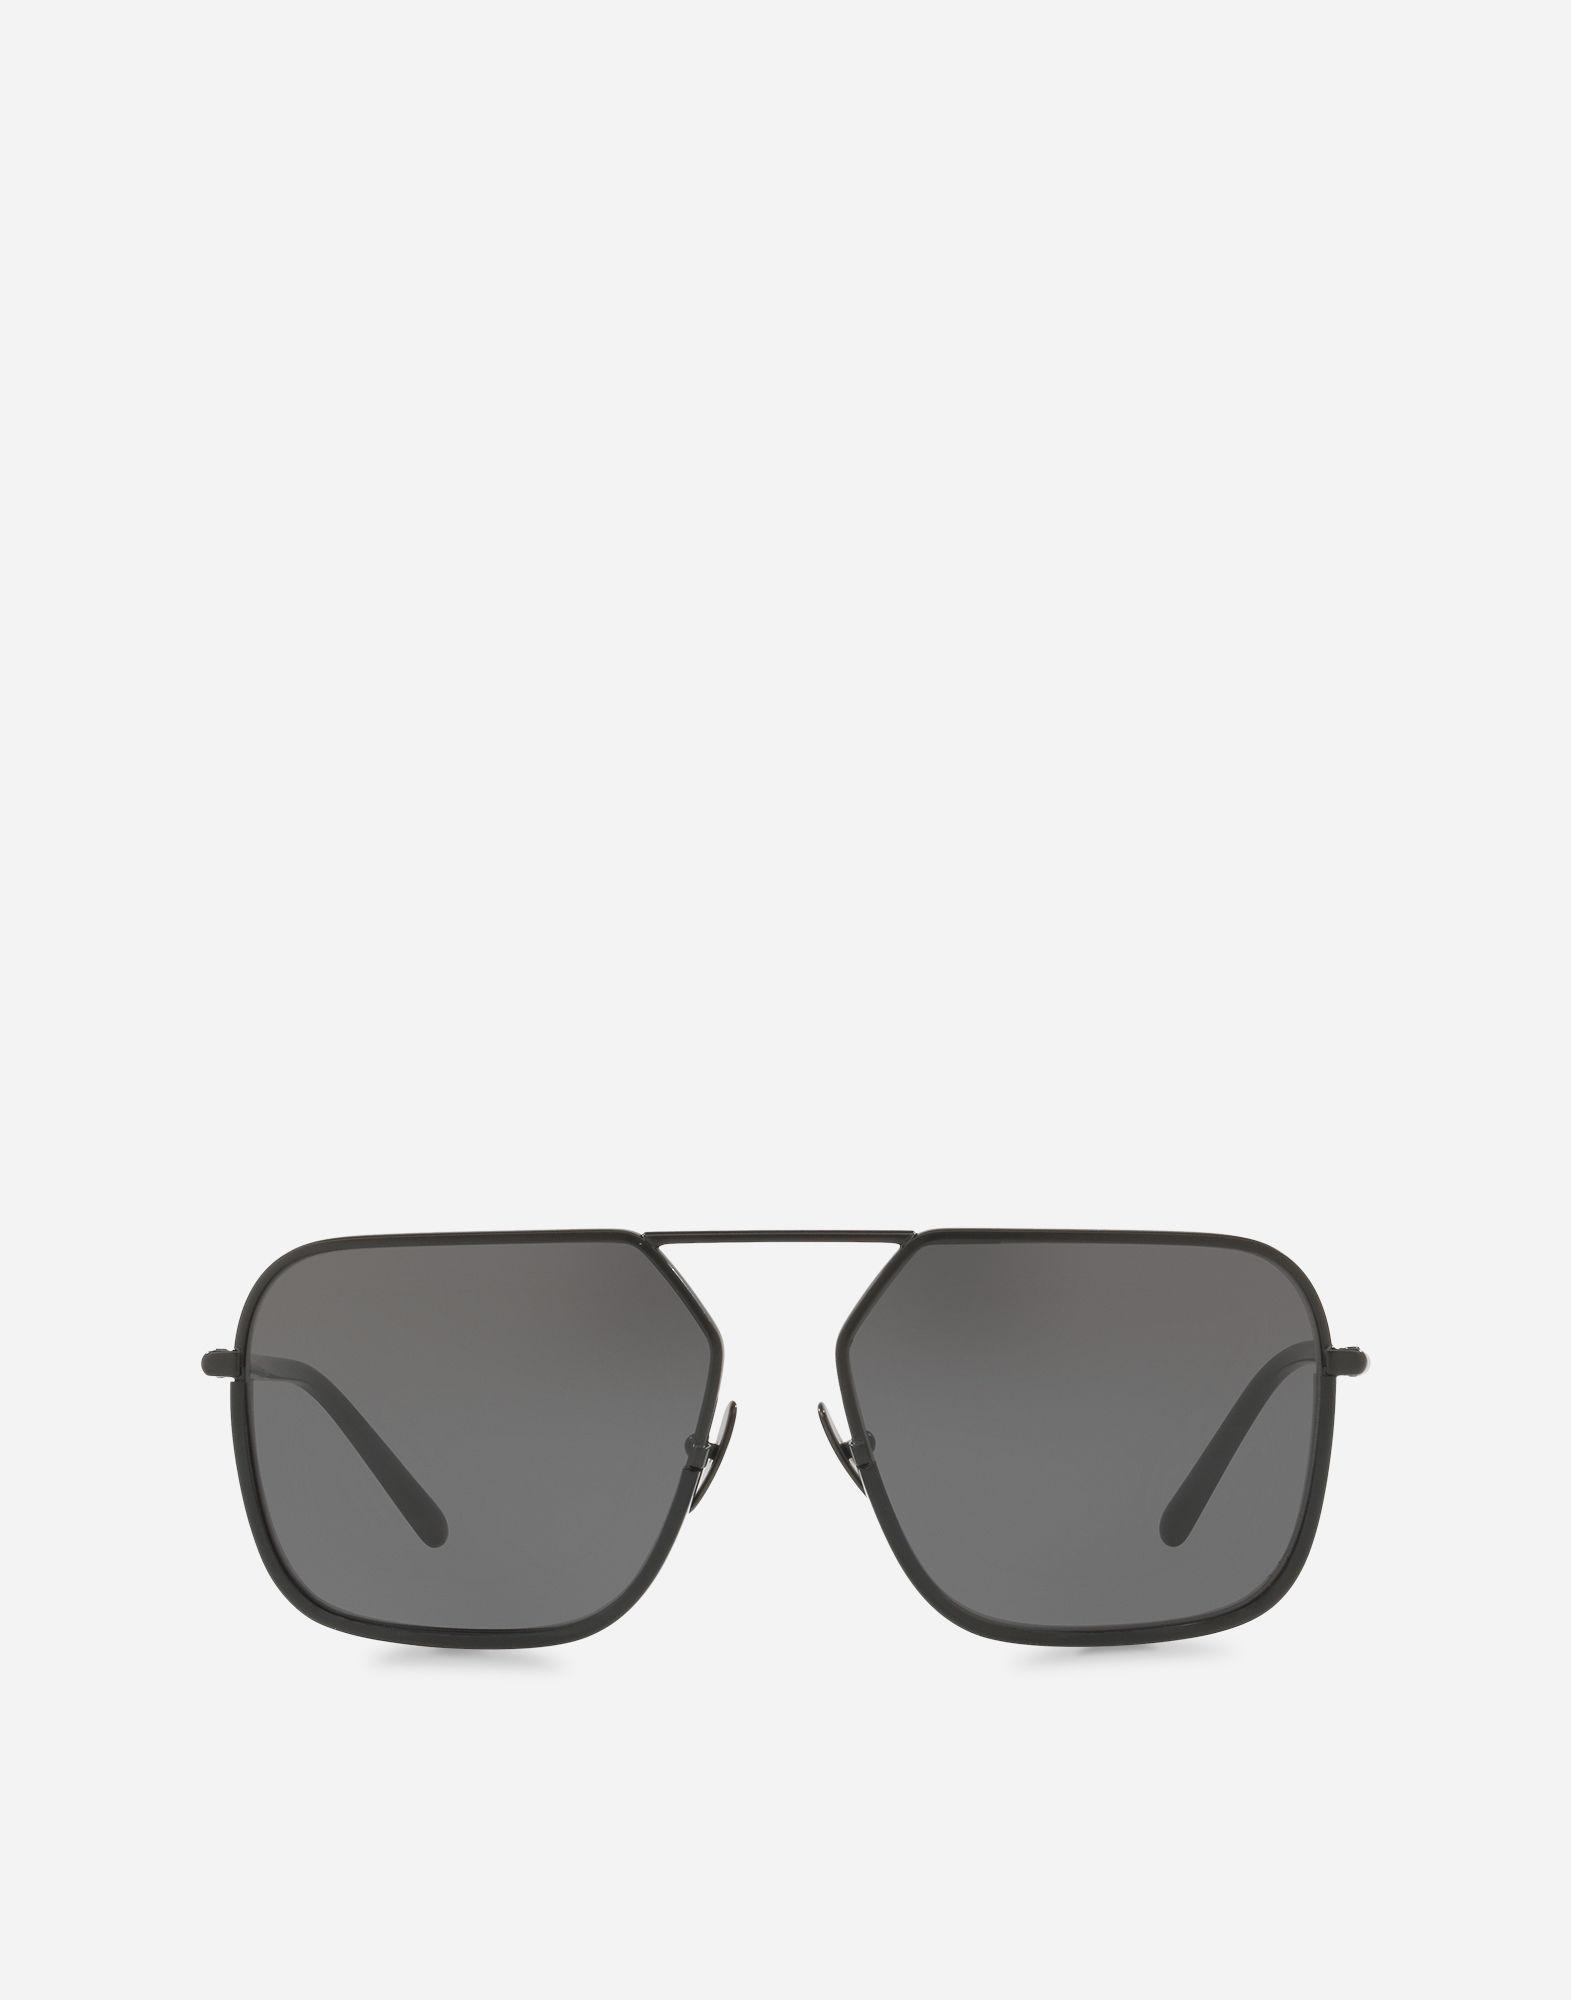 a8a0c03e086 Lyst - Dolce   Gabbana Royal Sunglasses in Black for Men